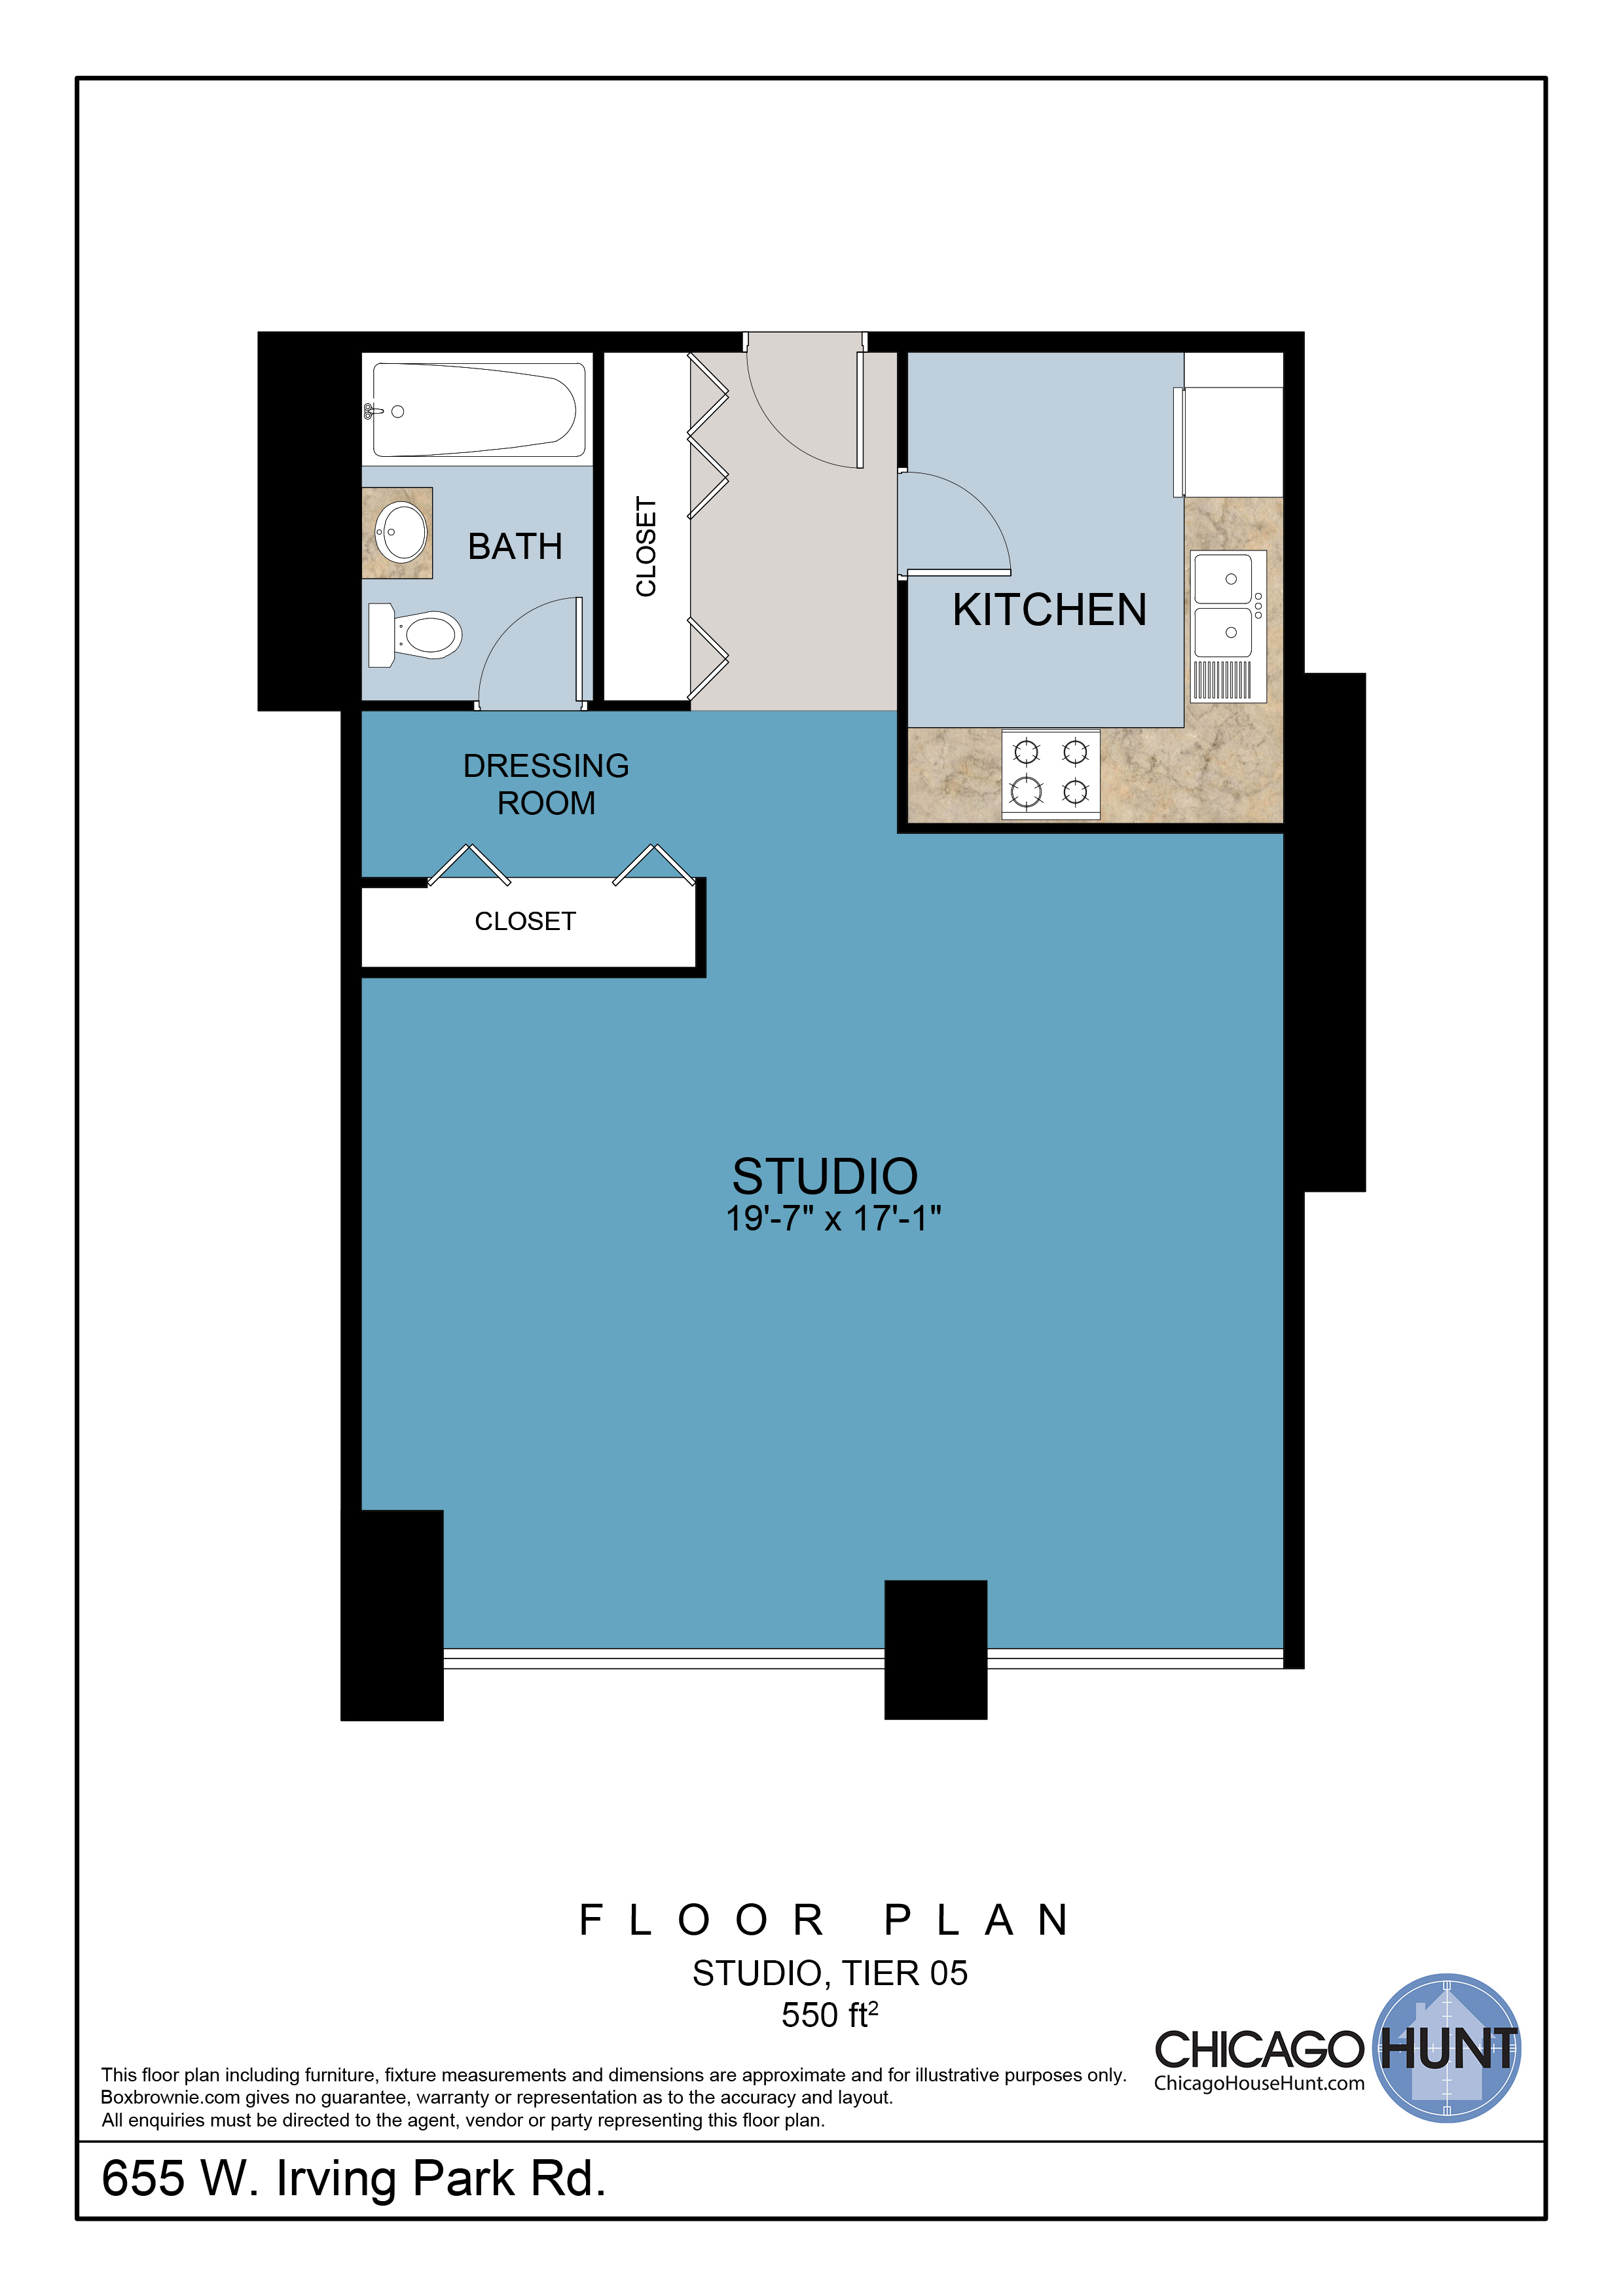 655 Irving Park, Park Place Towere - Floor Plan - Tier 05